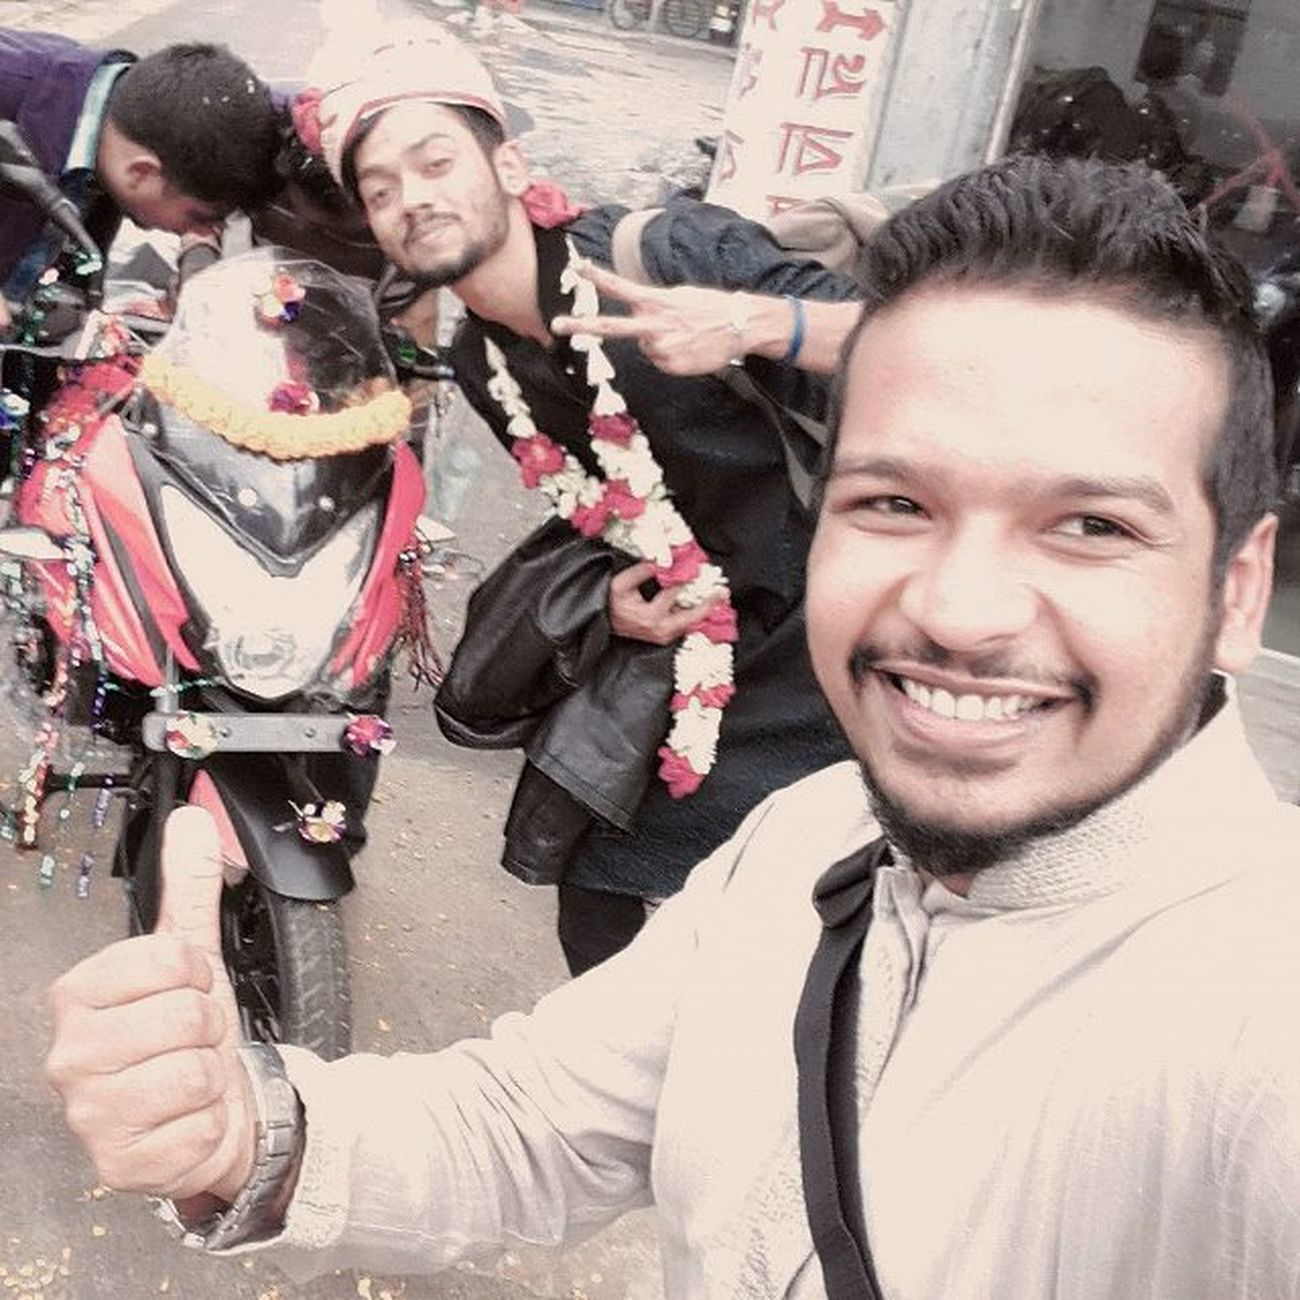 Just a funny click... Fun Funny Withfriend Bajajpulsar Pulsar150as Pulsar ...